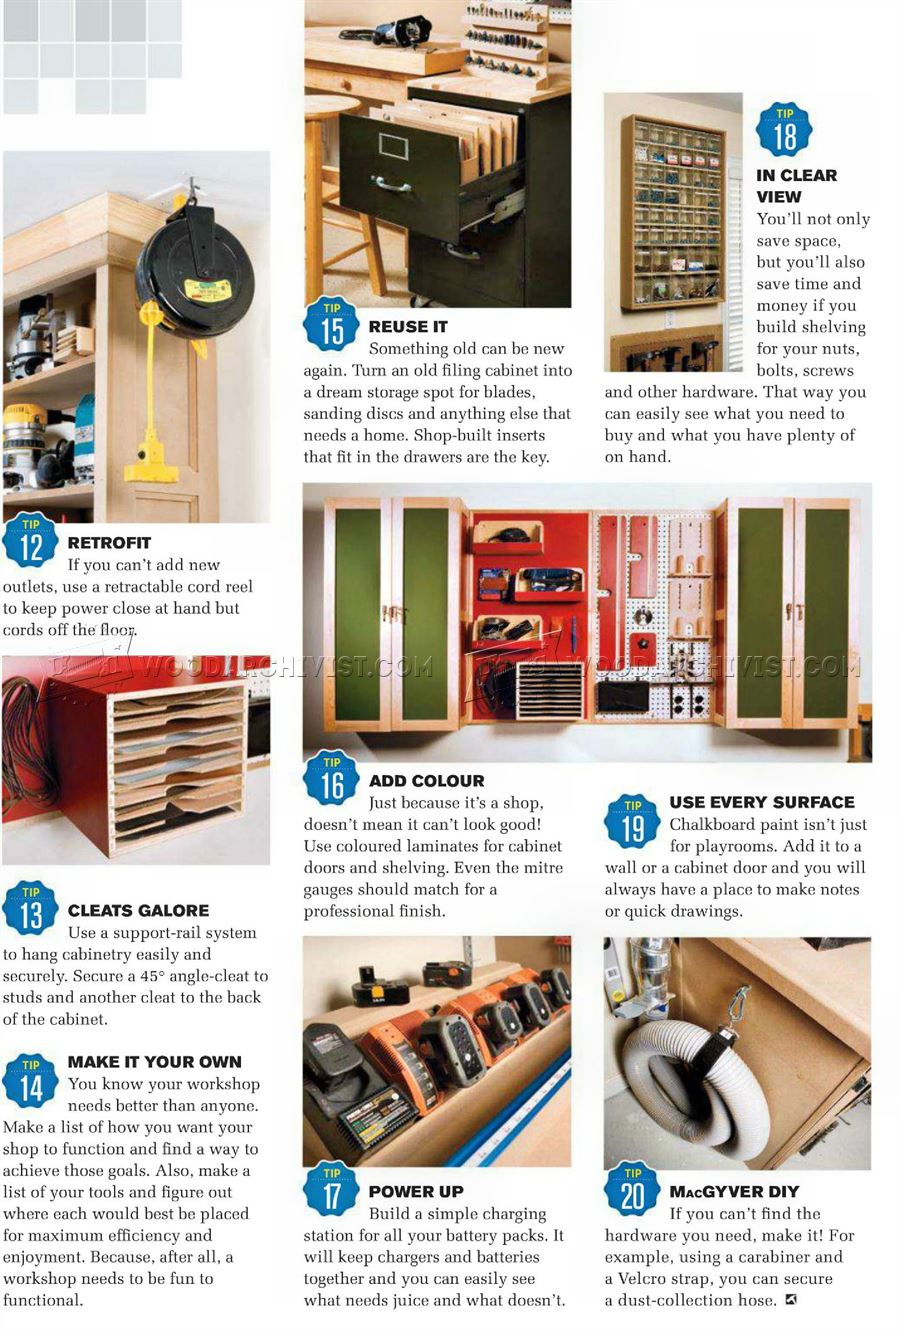 20 Tips for Creating a More Efficient Workshop